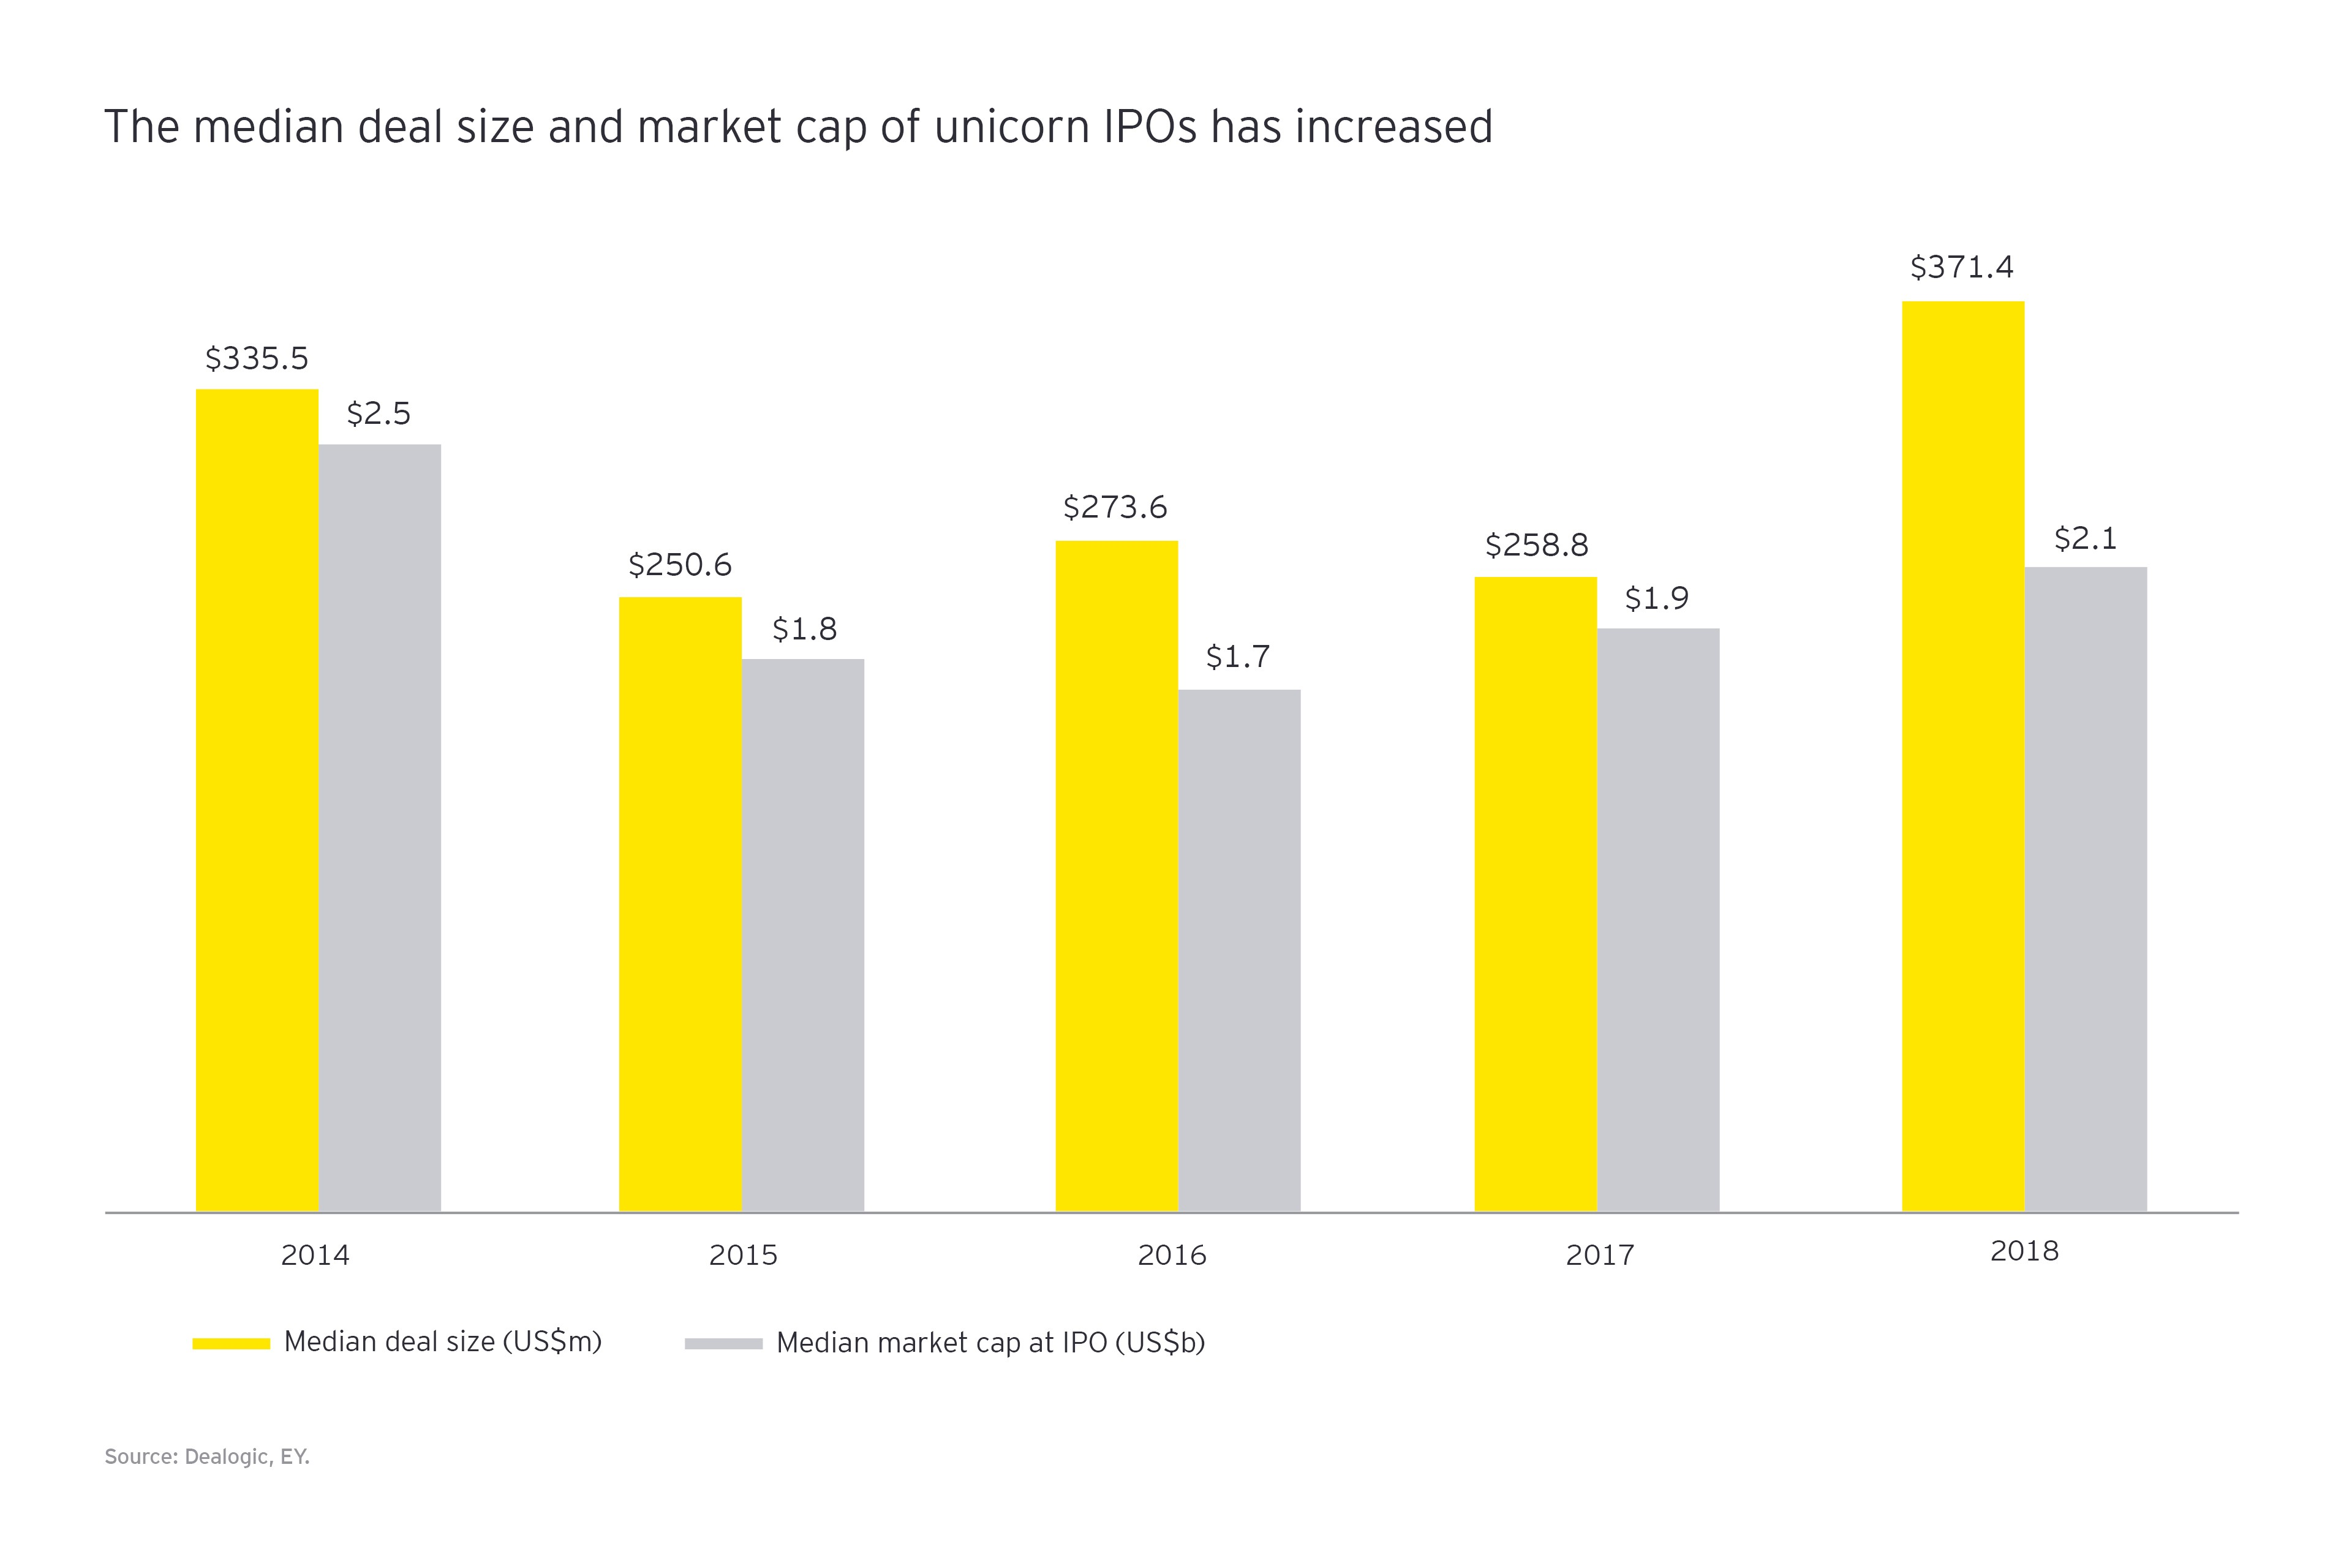 The media deal size and market cap of unicorn IPOs